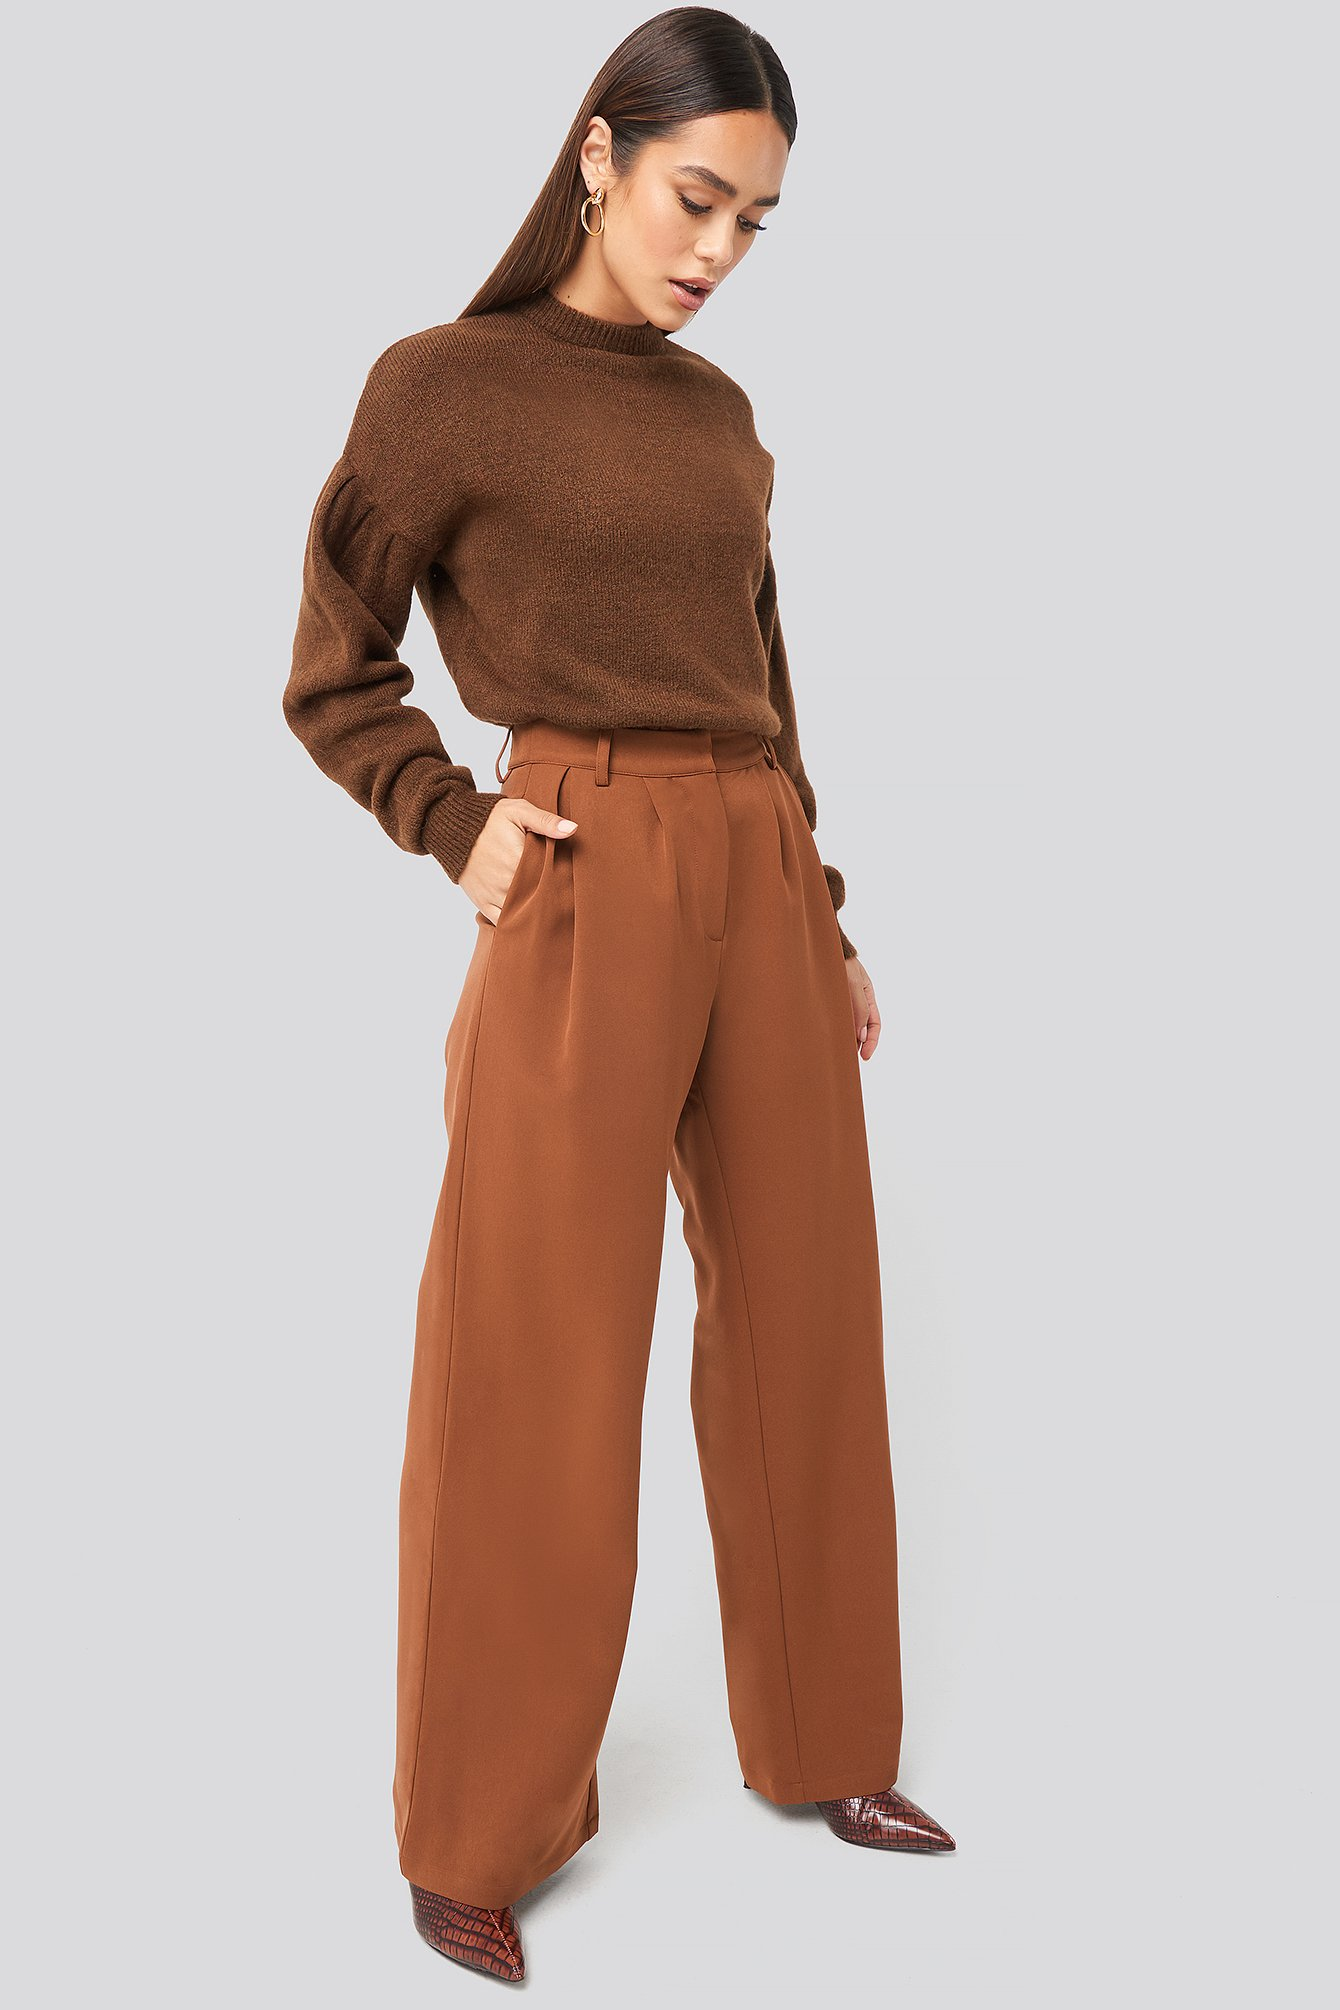 hanna weig x na-kd -  Flowy Tailored Pants - Brown